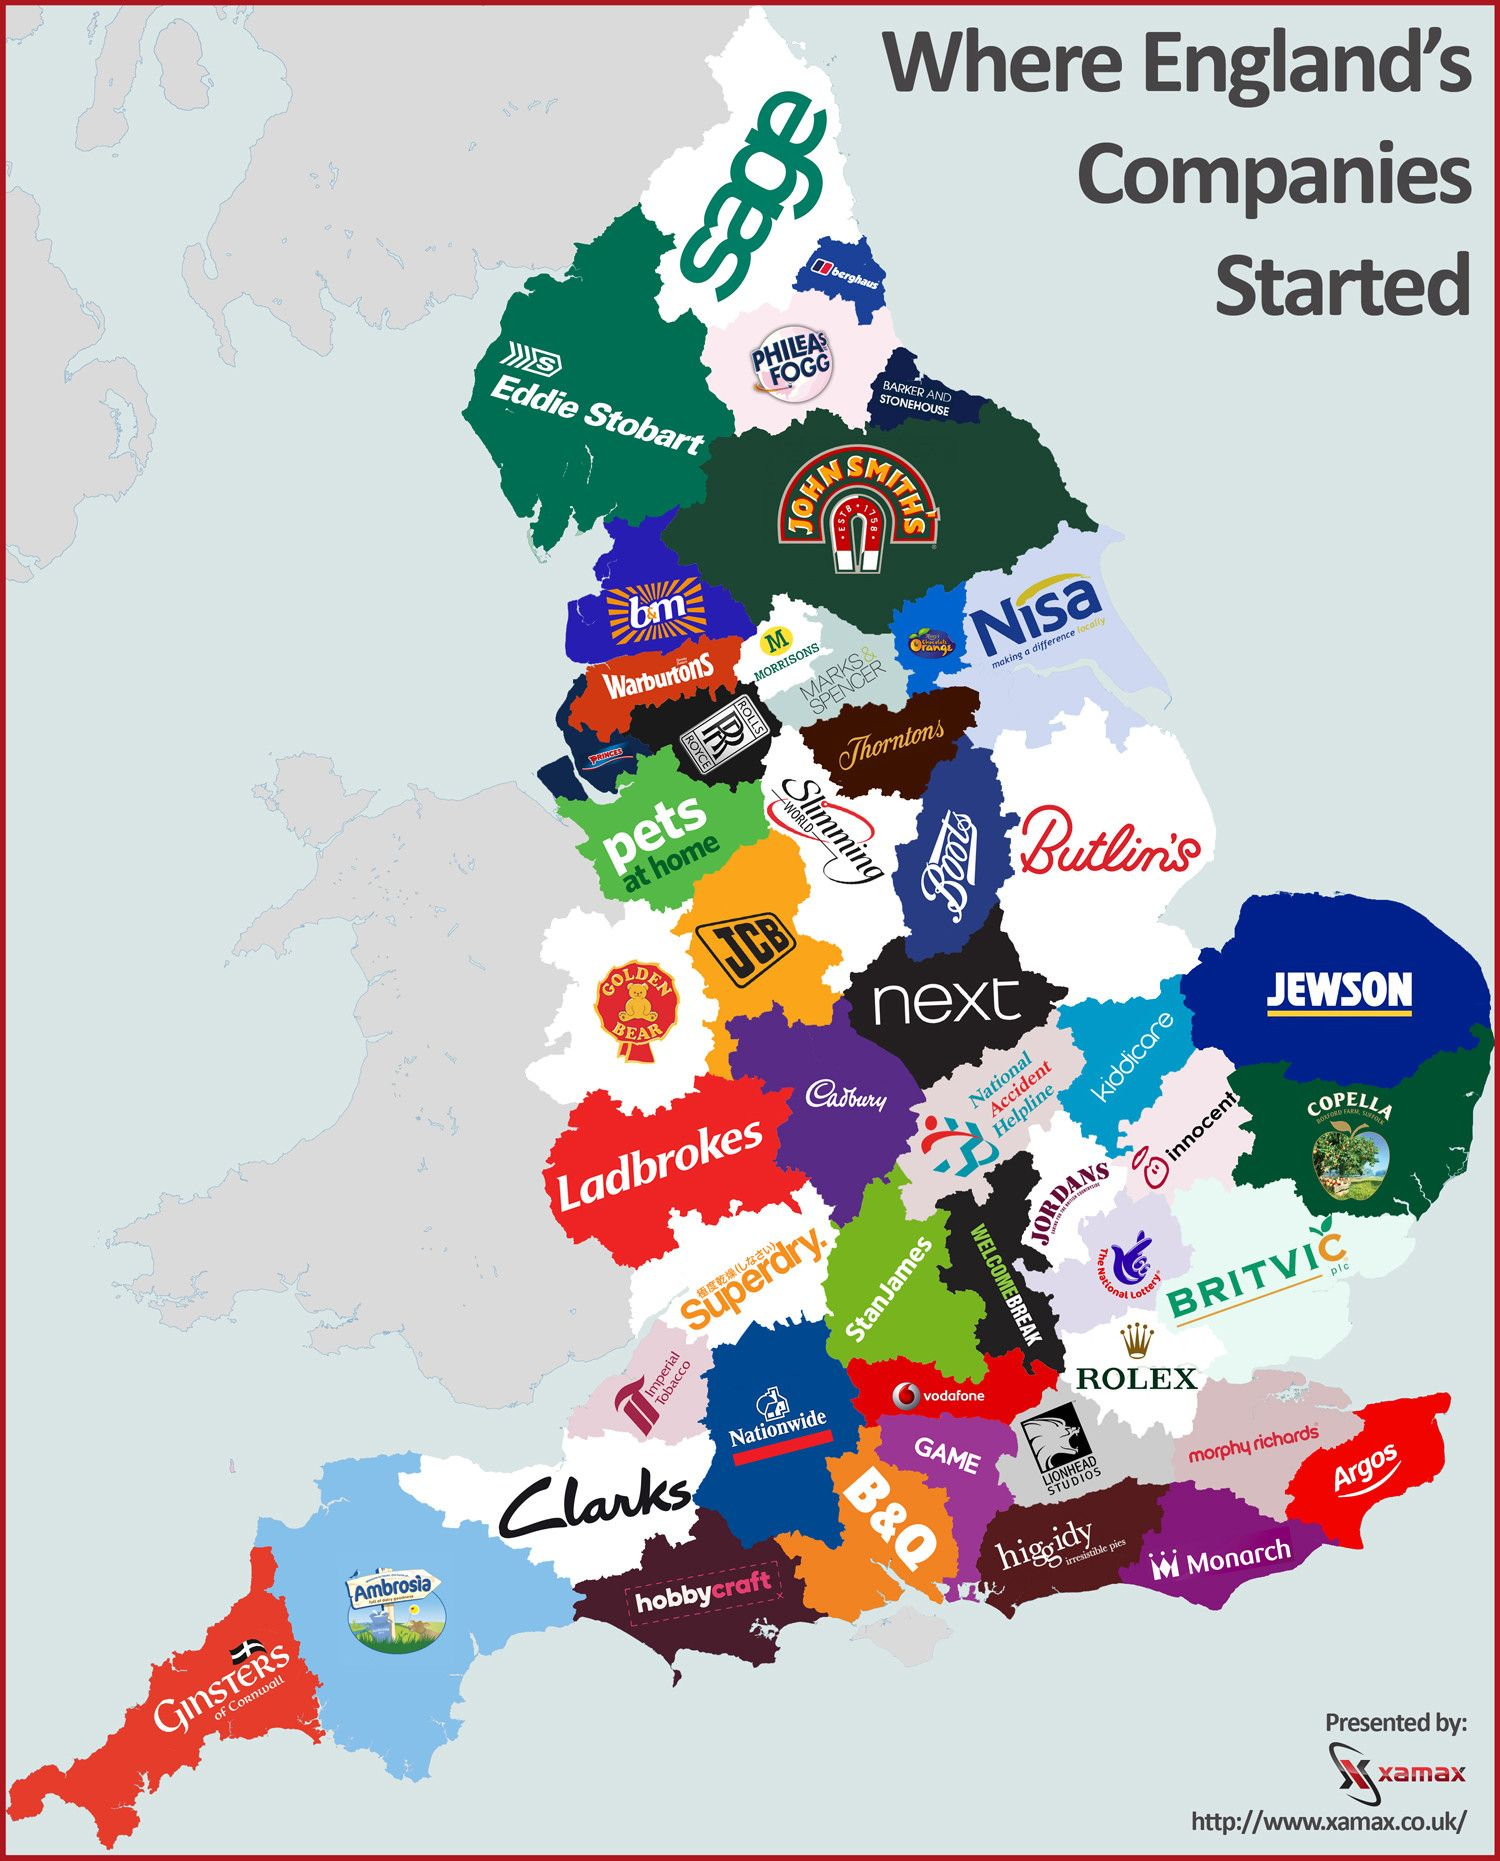 Uk Company: Where England's Companies Started #infographic